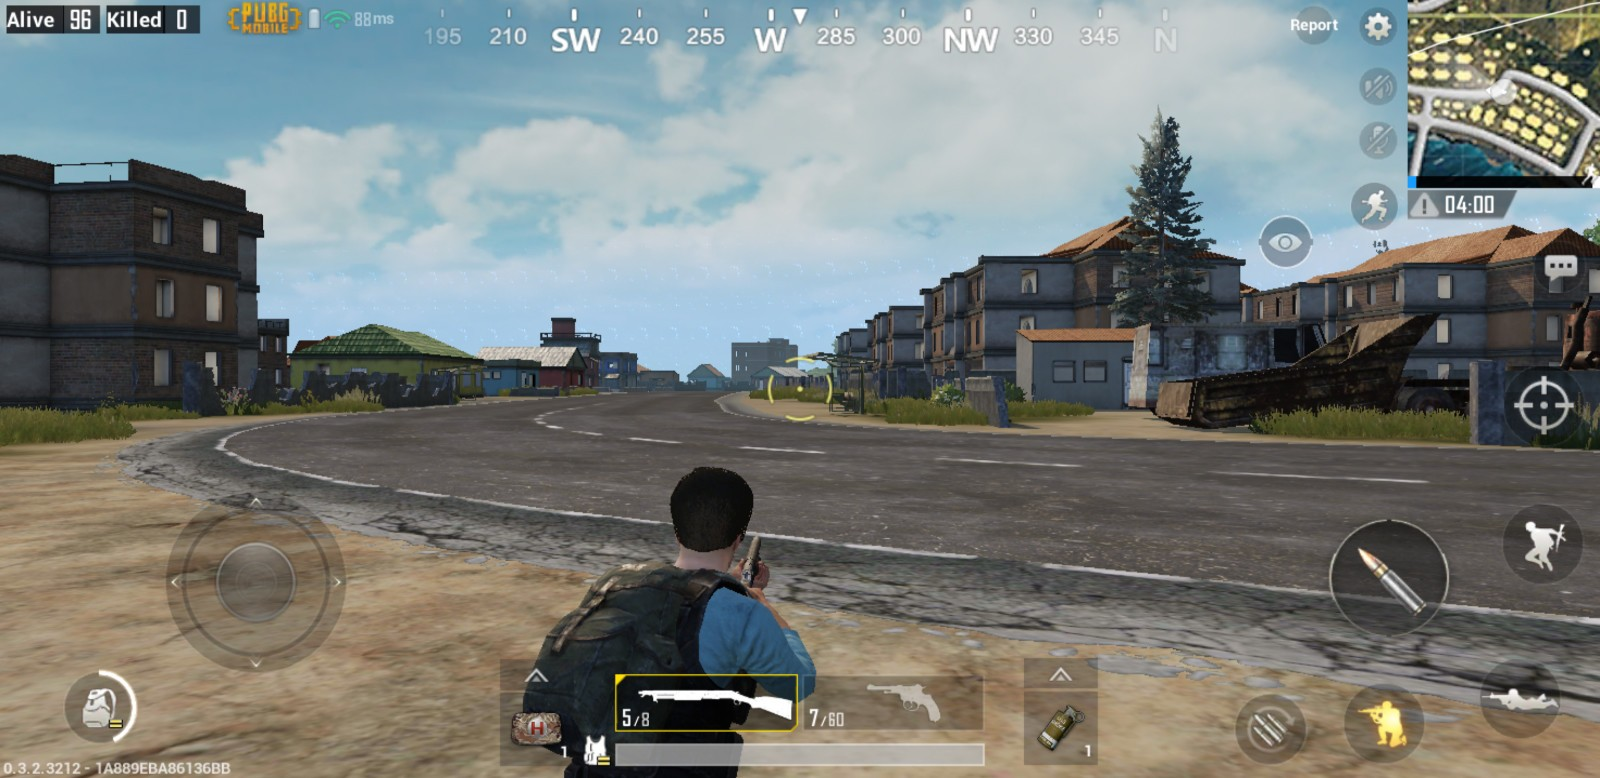 PUBG for Android review: The hype is real - knowtive